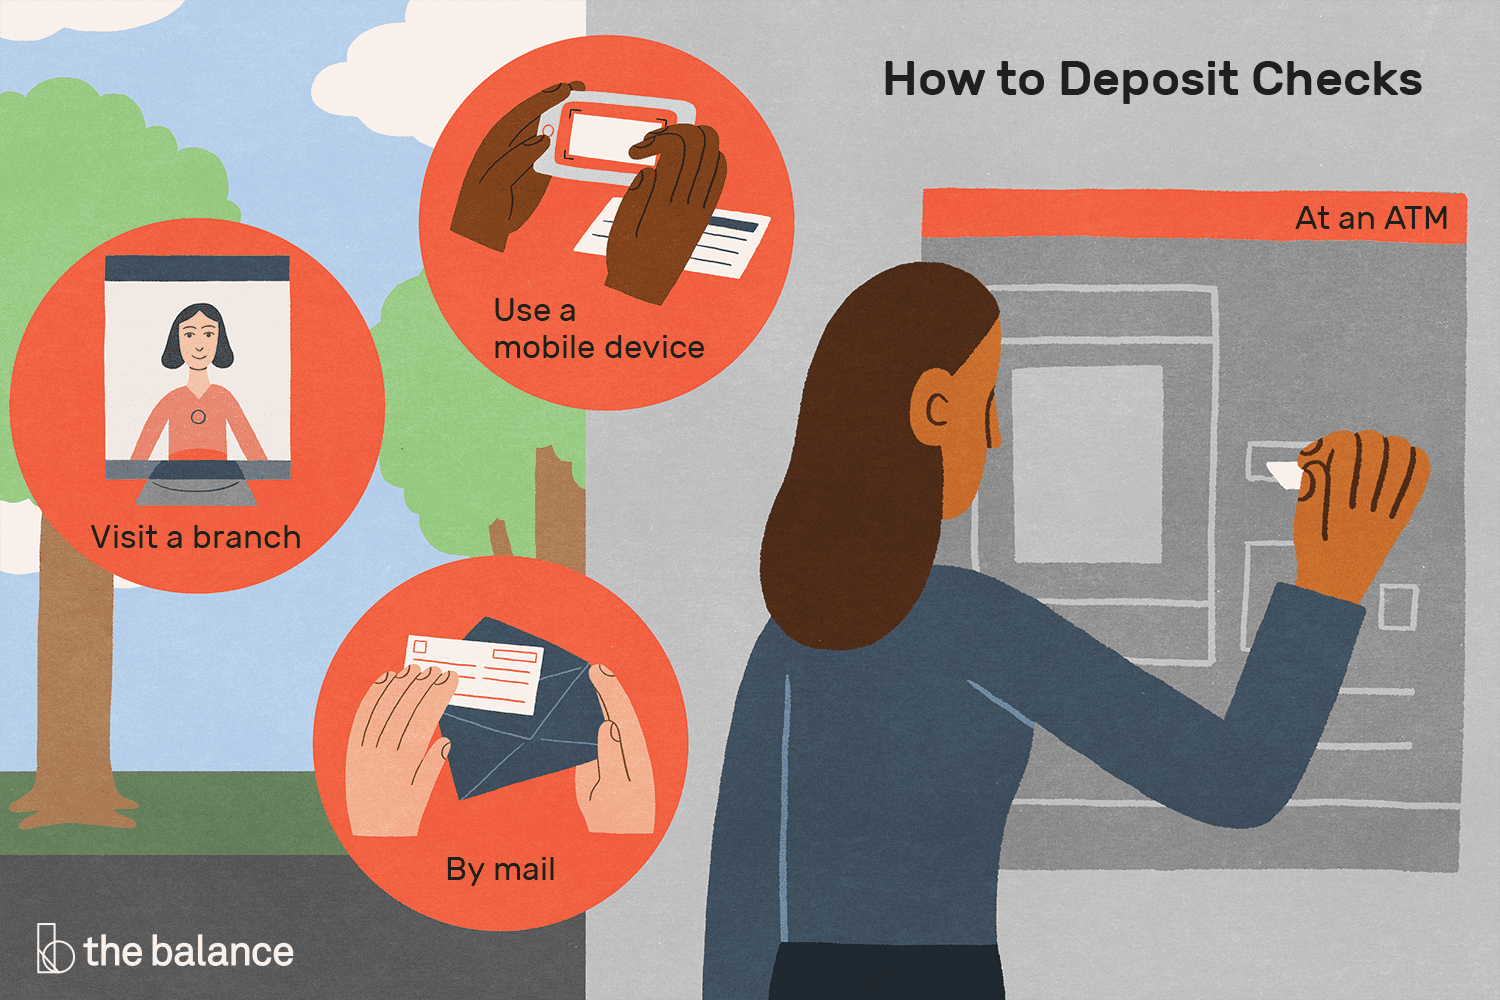 How and Where to Deposit Checks: Convenience and Fees